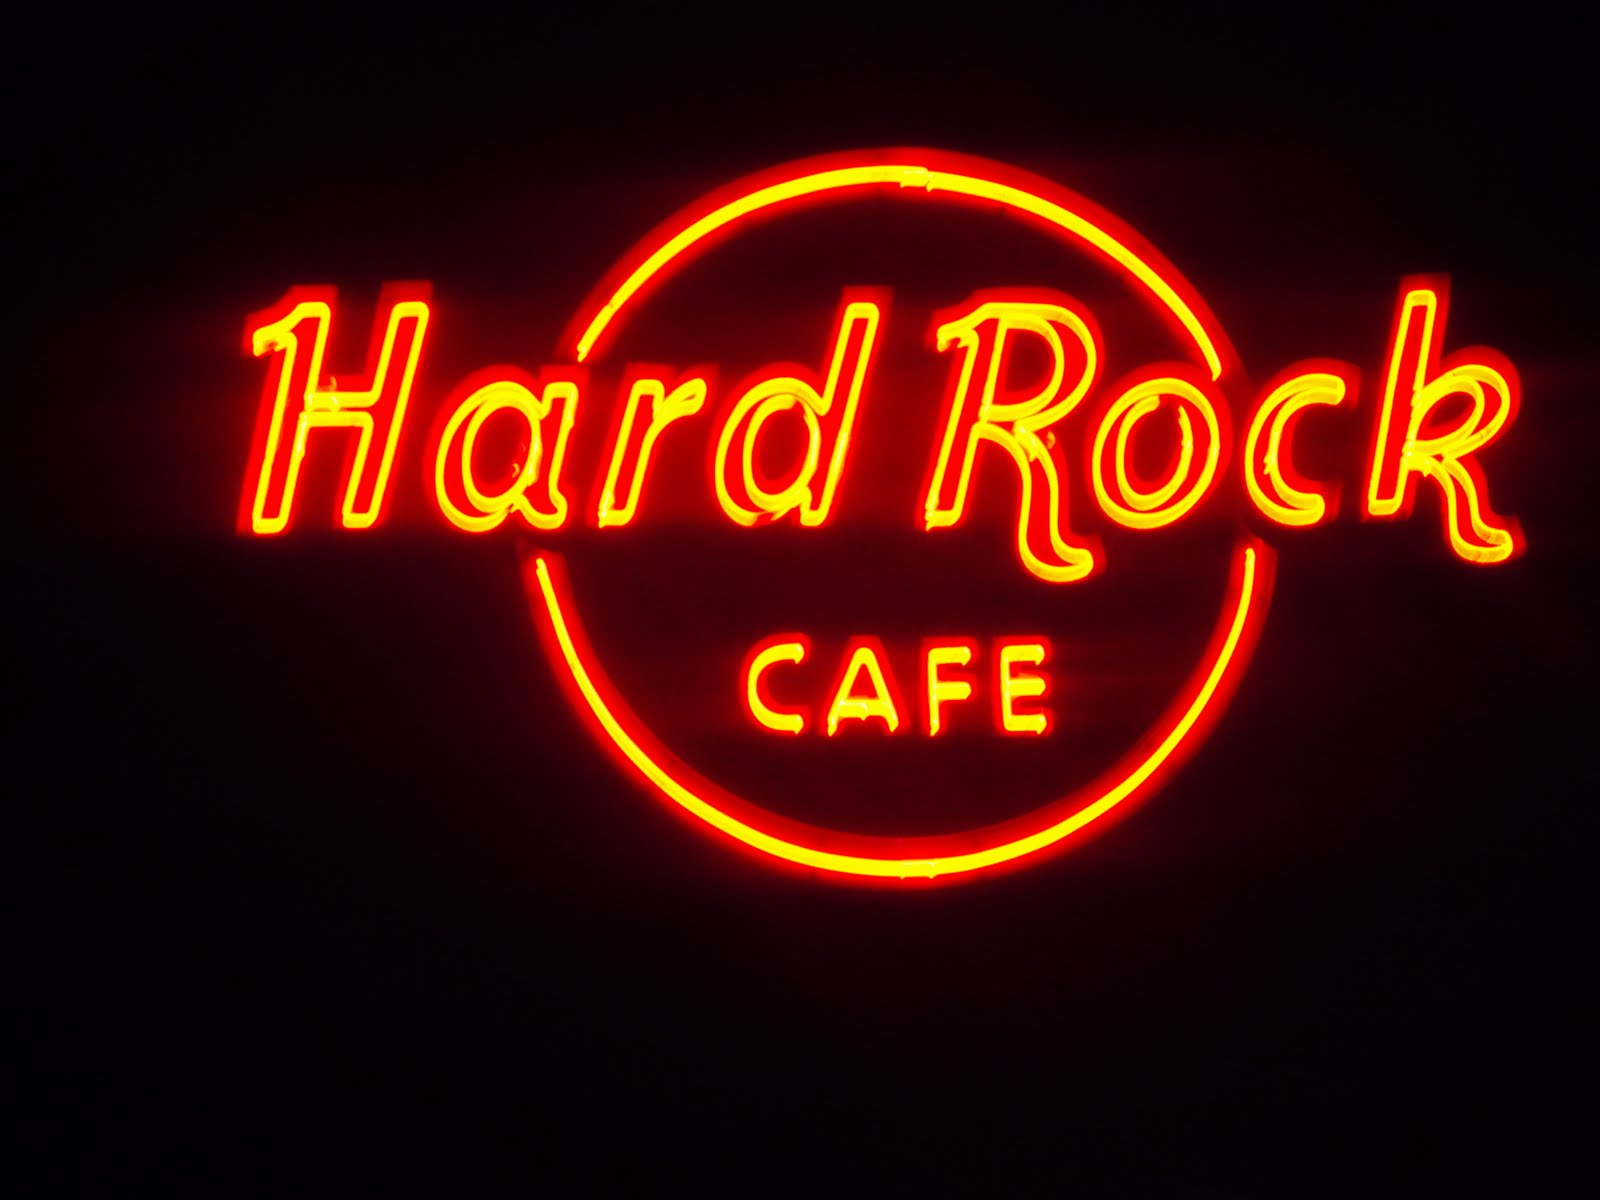 The Hard Rock Cafe